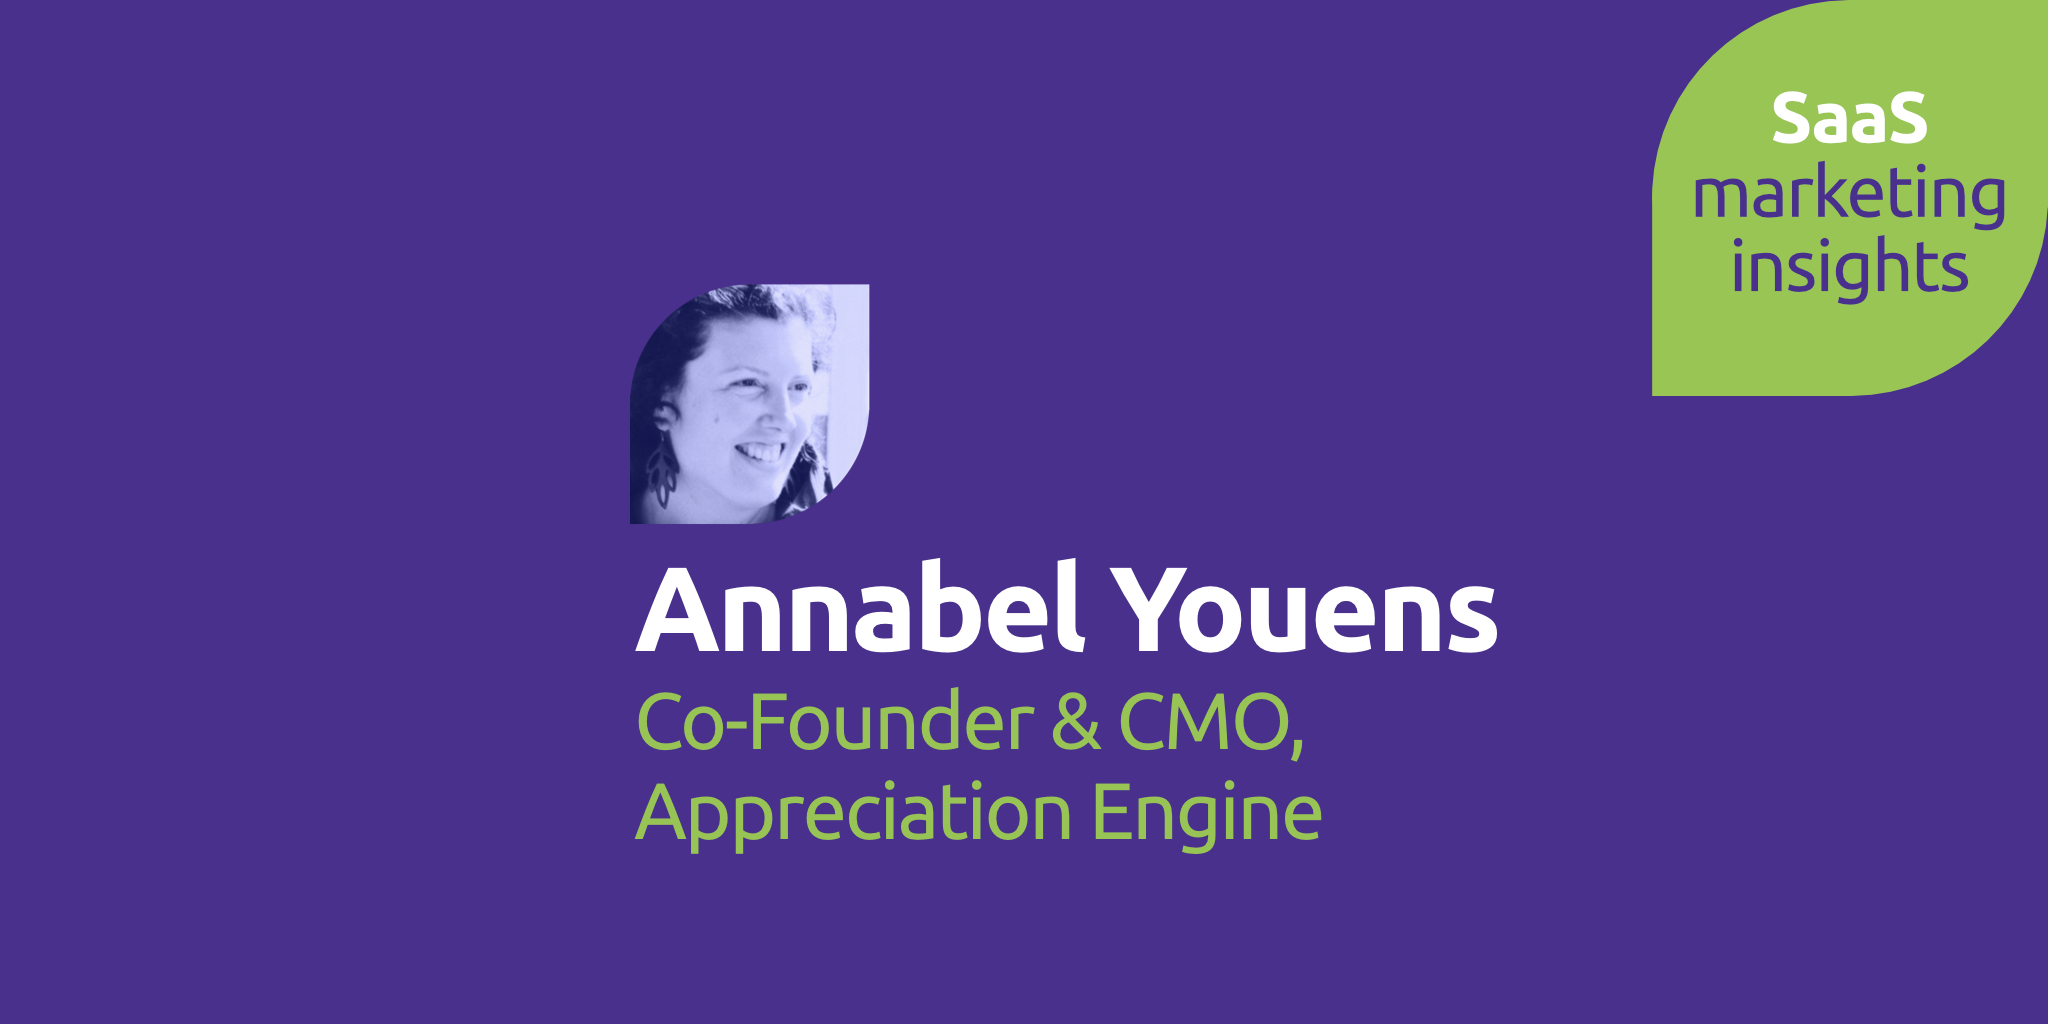 Annabel Youens, Appreciation Engine